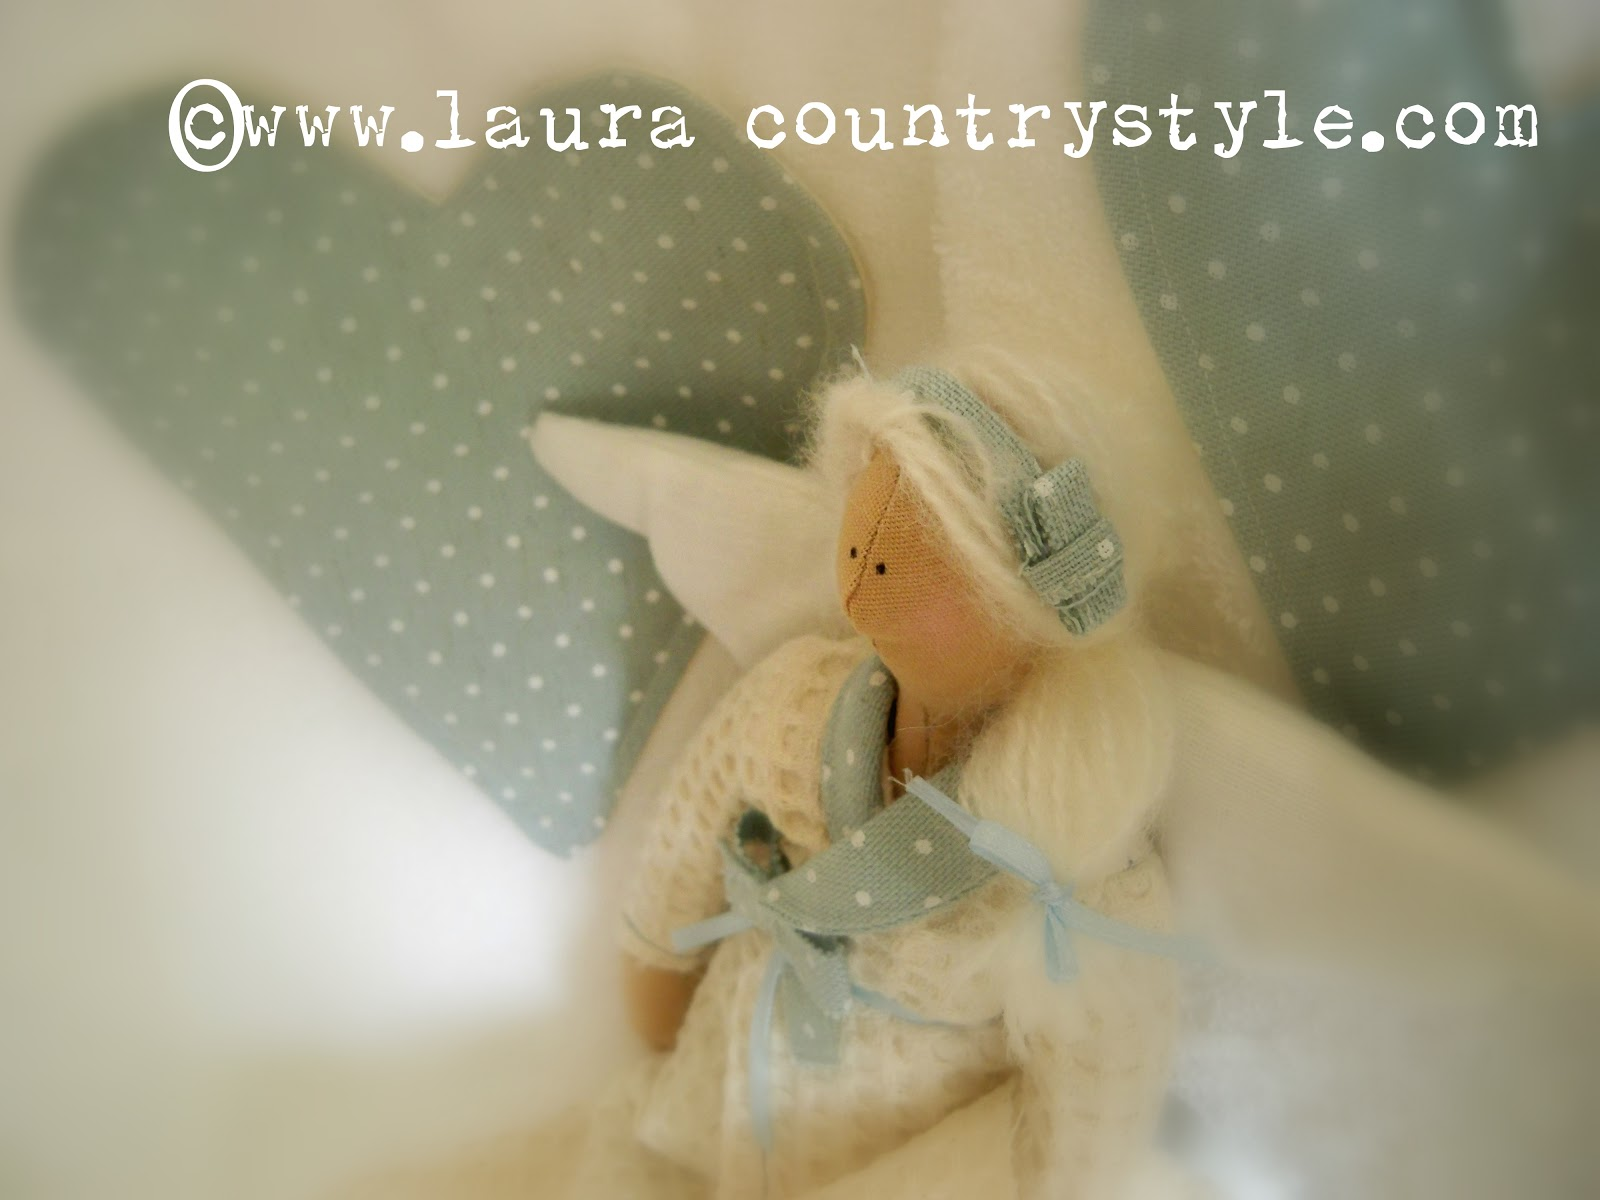 Laura country style azzurro polvere